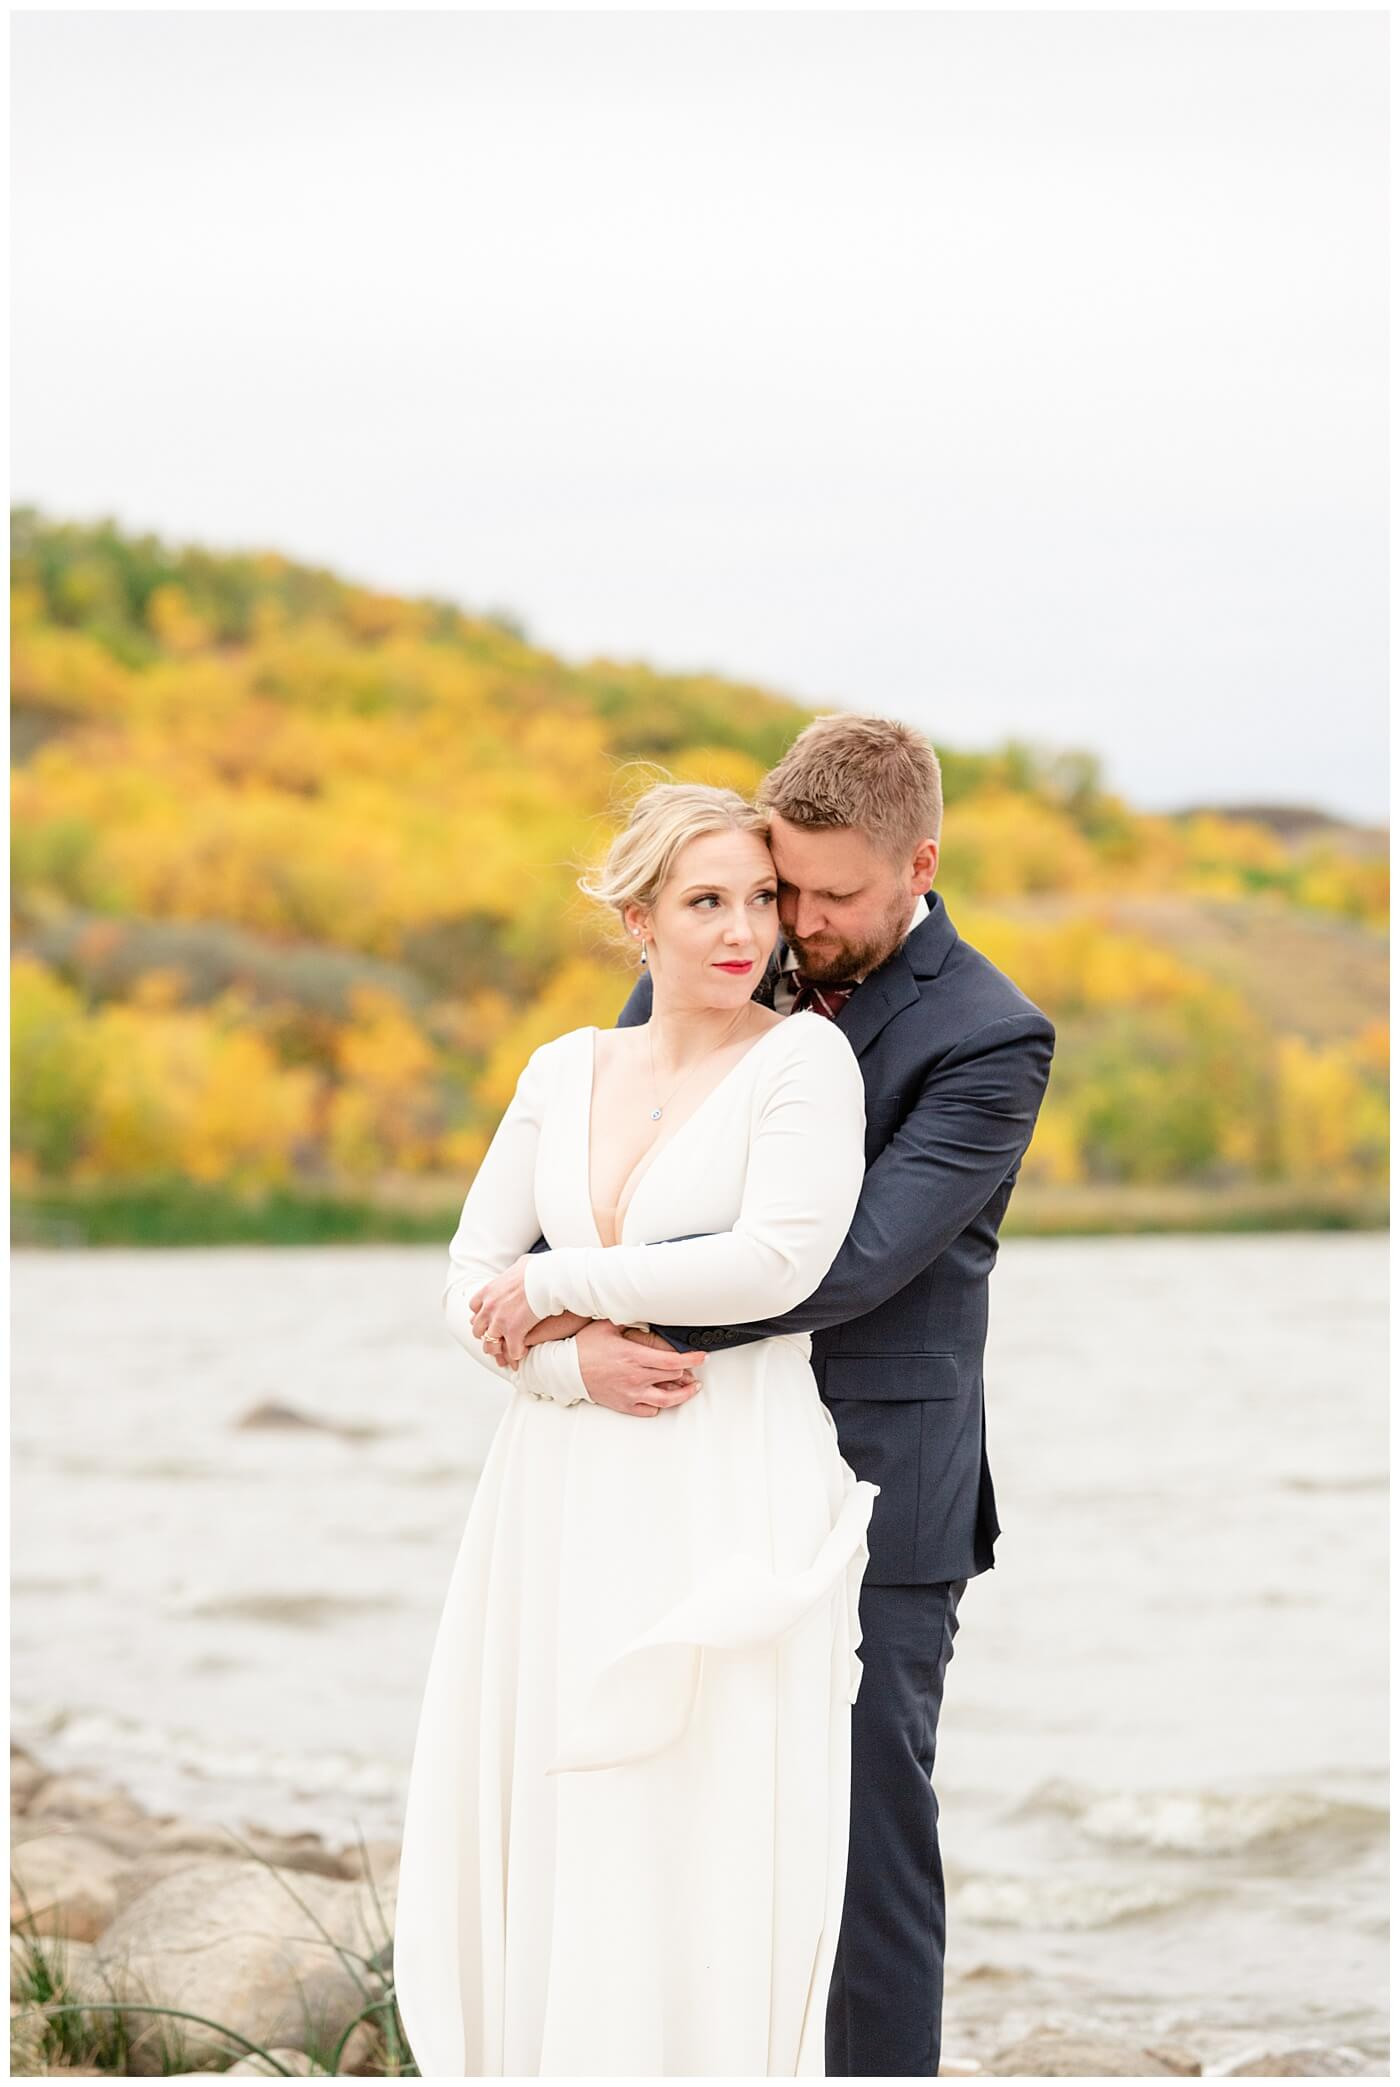 Regina Wedding Photographer - Tyrel - Allison - Bride looks out over the water as her Groom embraces her